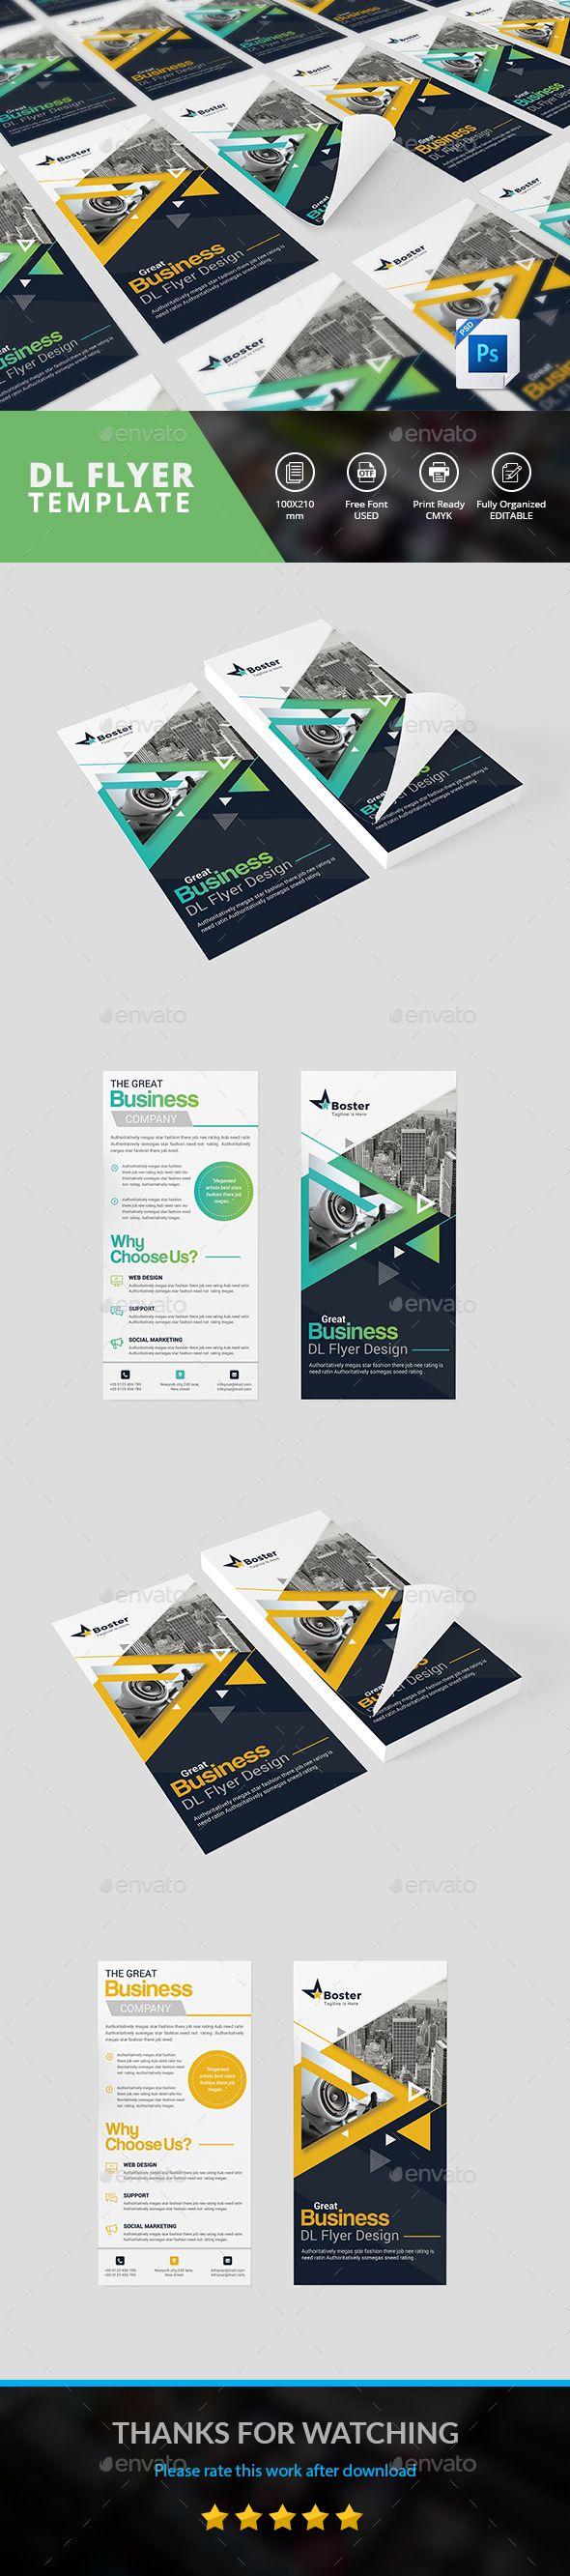 Dl Flyer Flyer Template Template And Business Flyers